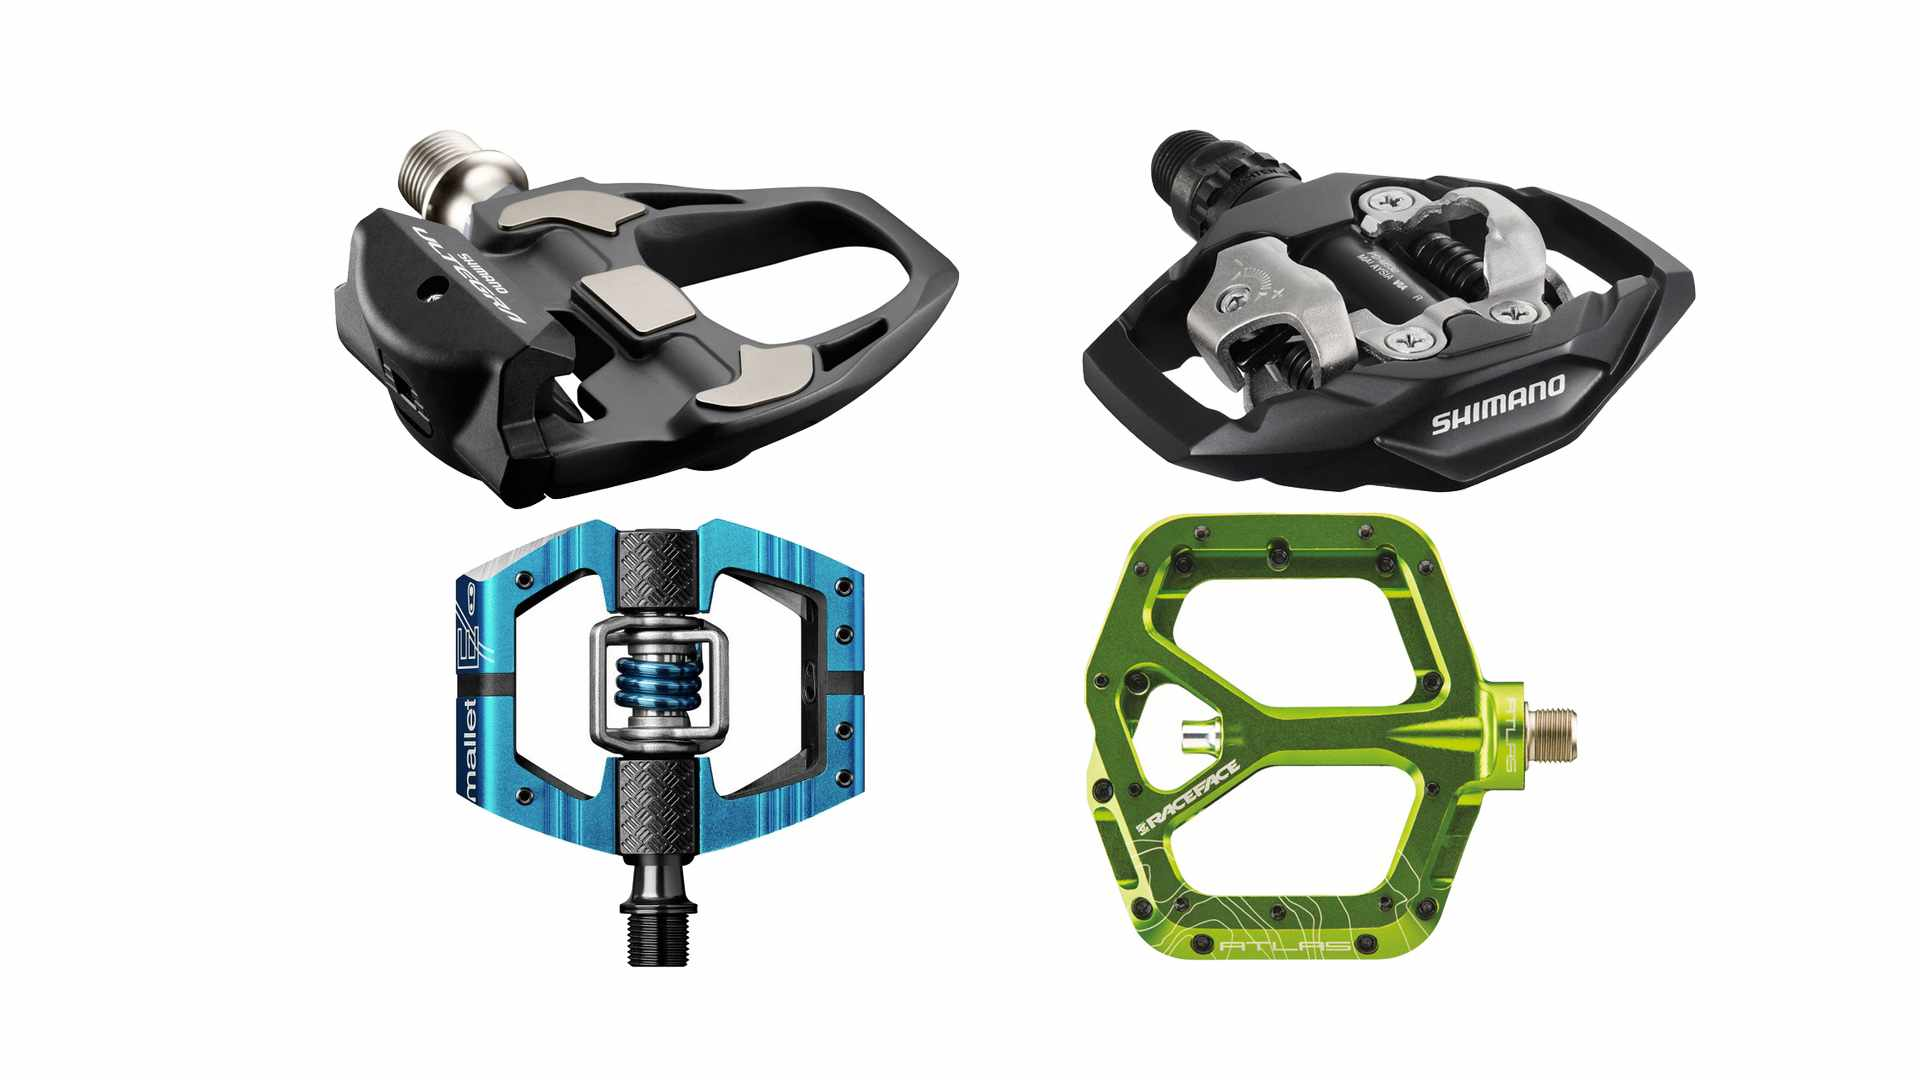 Collage of 4 bicycle pedals